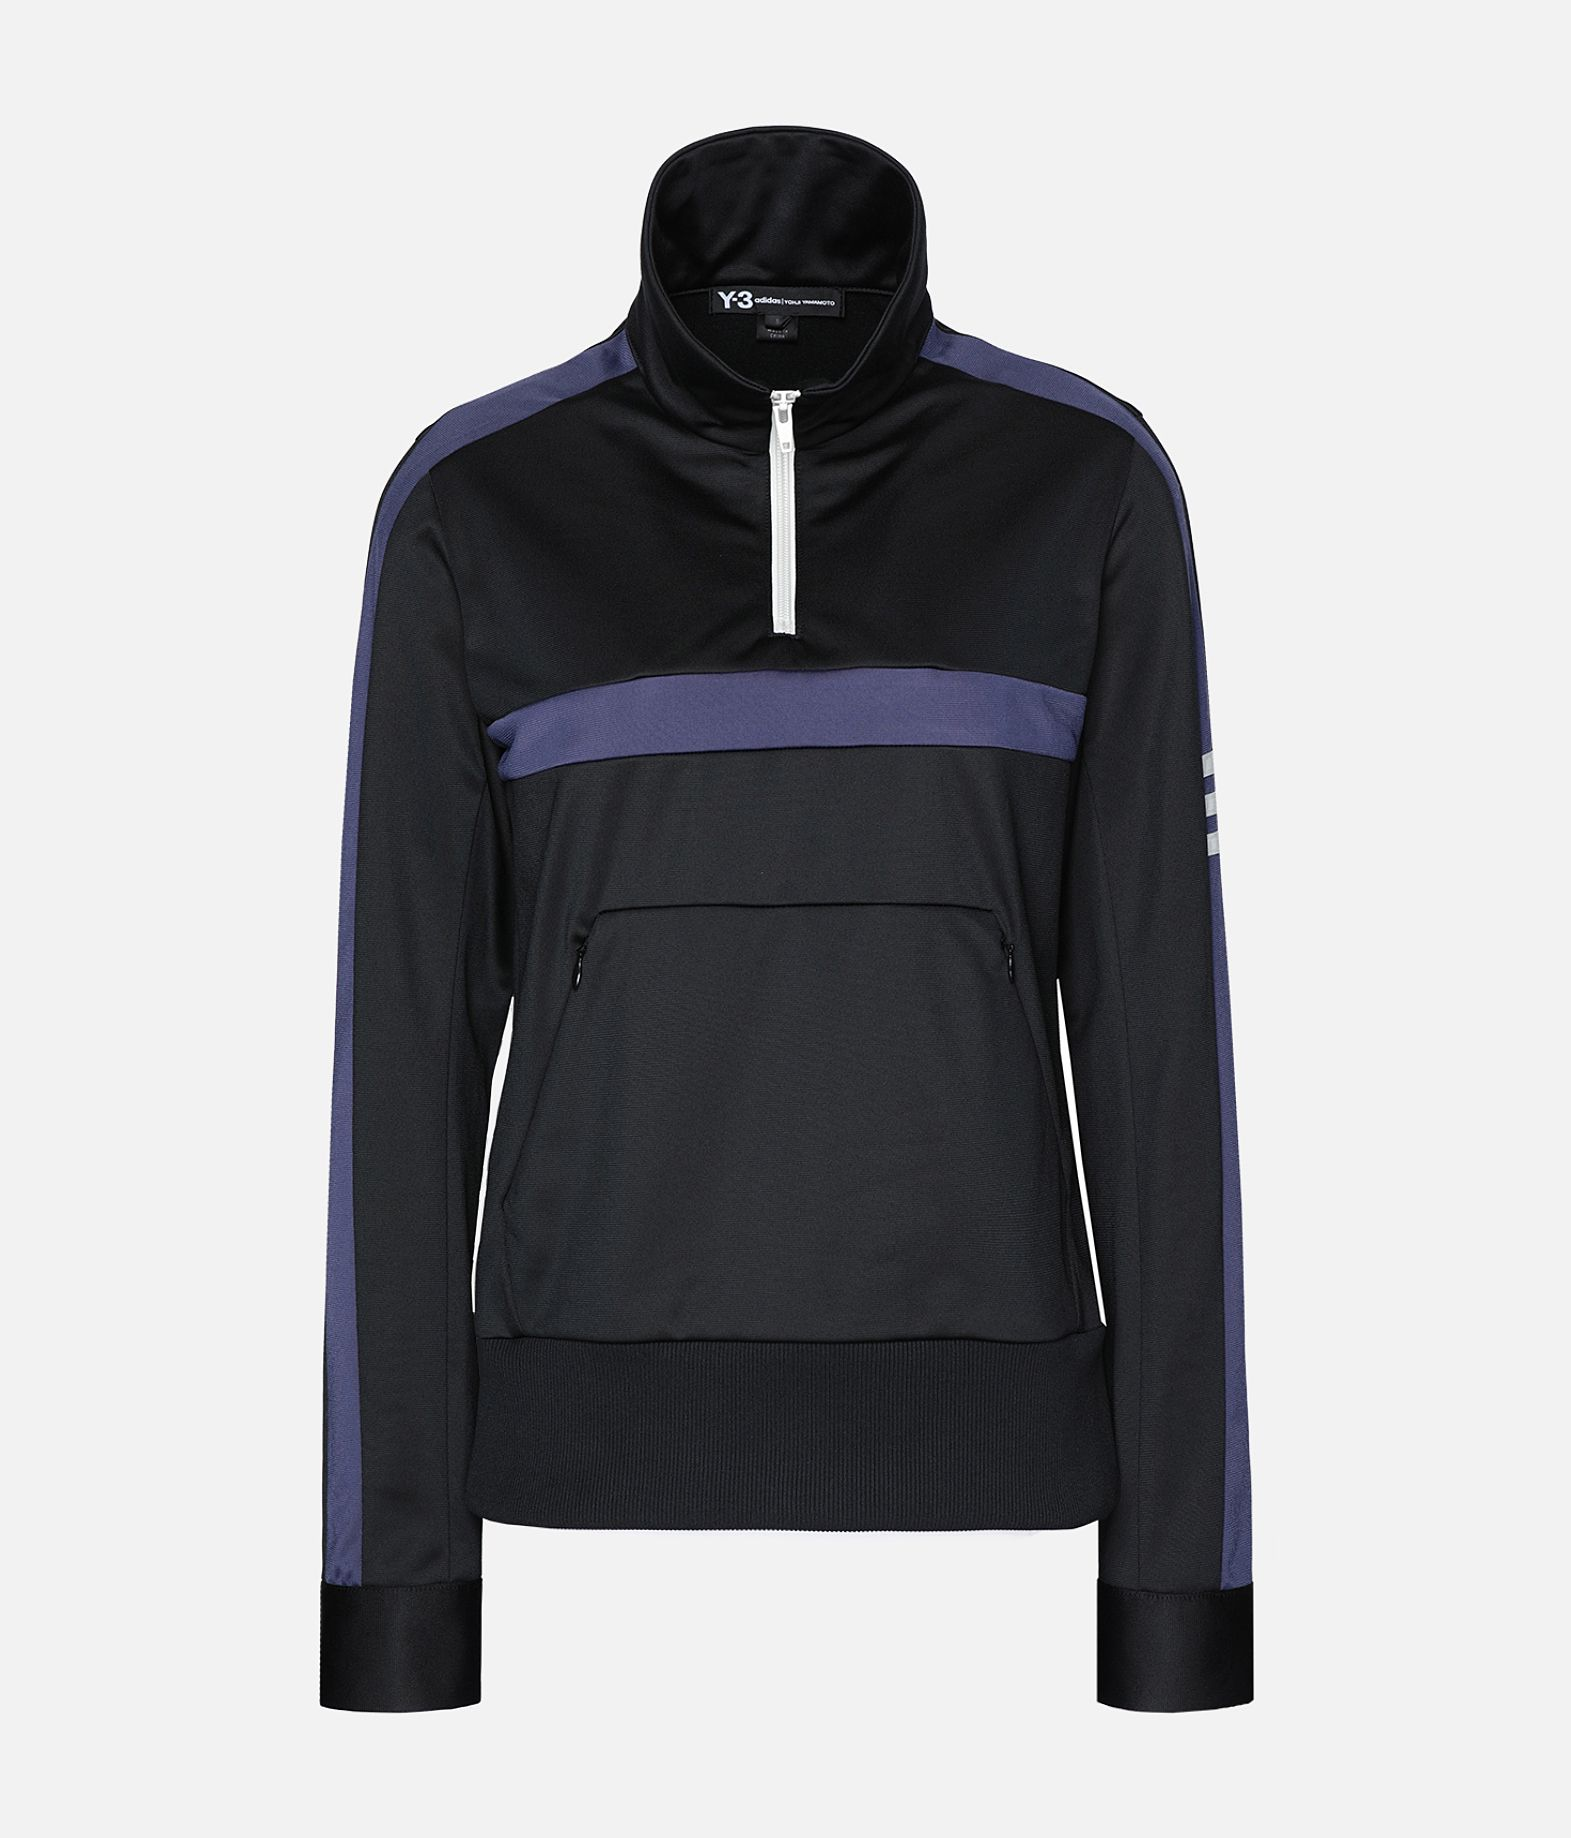 Y-3 Y-3 Firebird Half-Zip Track Jacket Track top Woman f